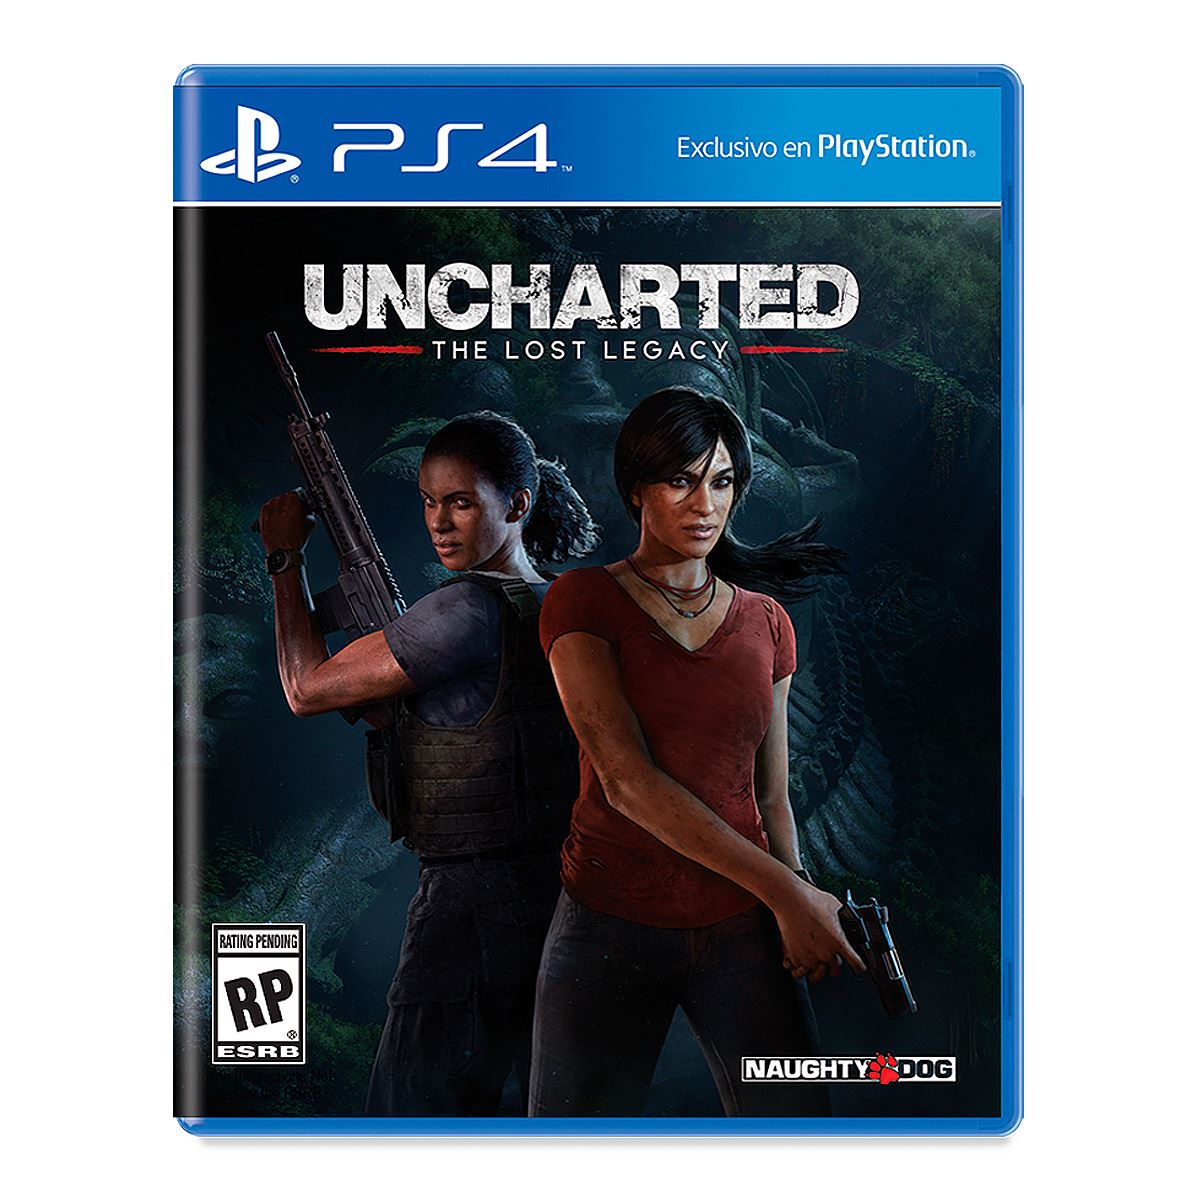 Ps4 uncharted the lost legacy  - Sanborns